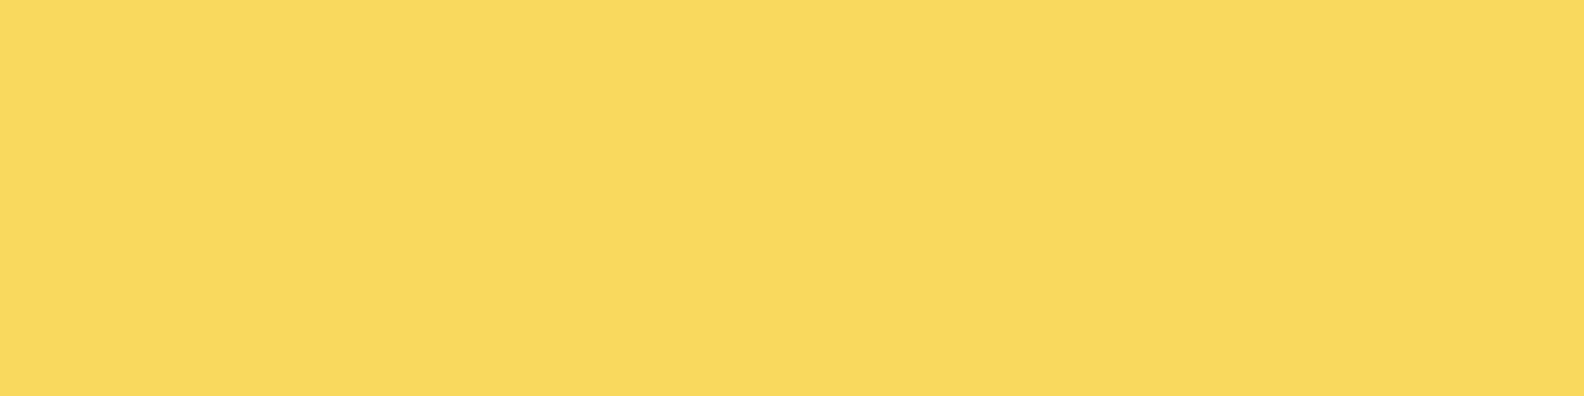 1584x396 Naples Yellow Solid Color Background